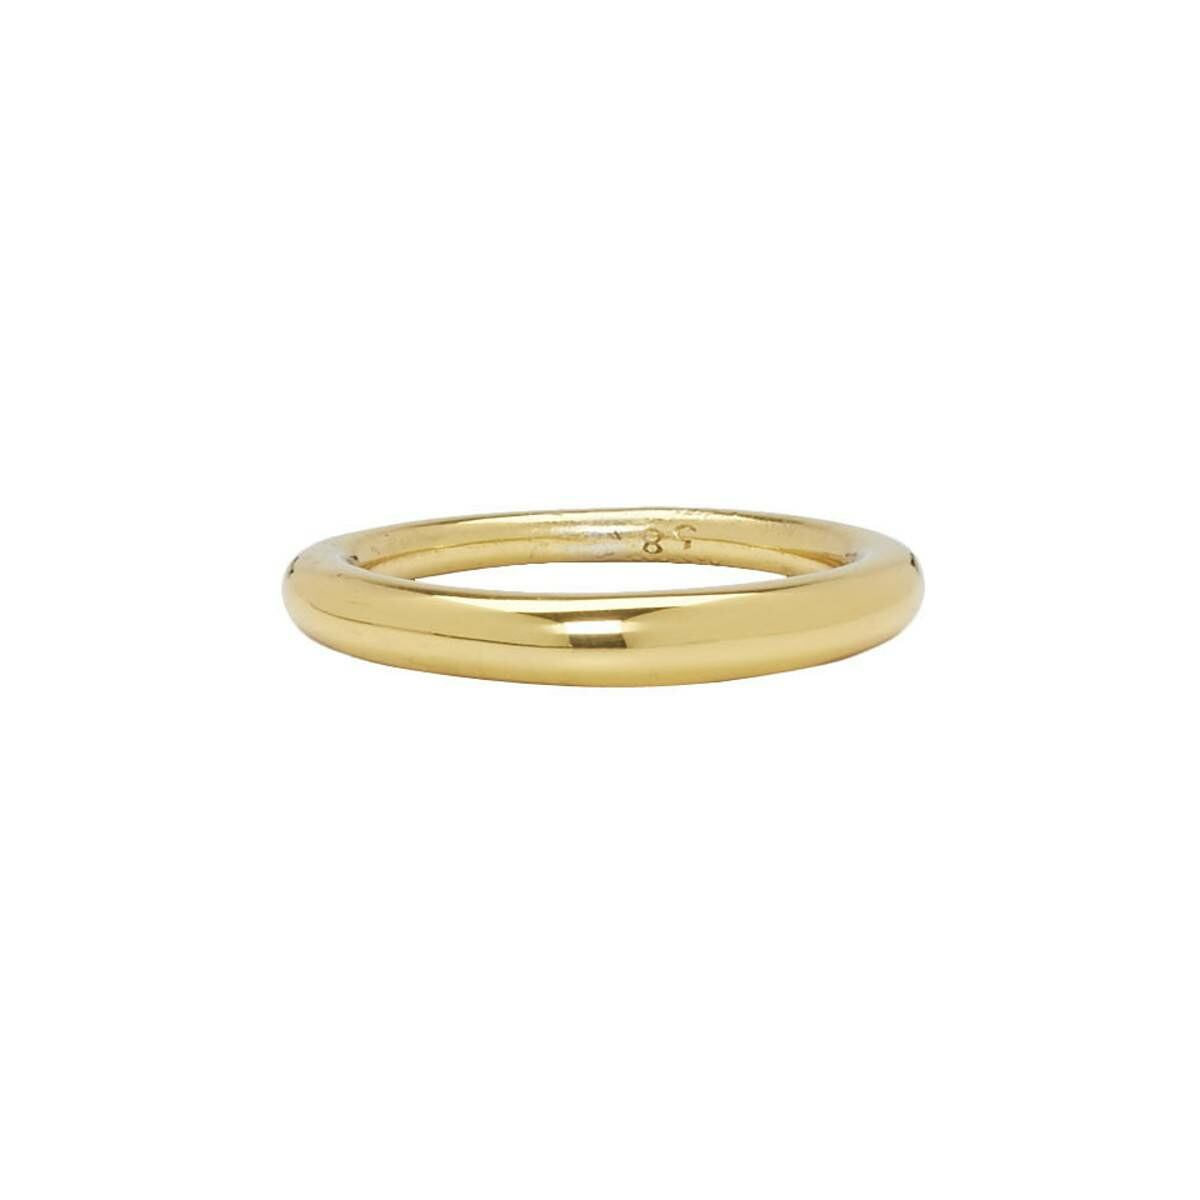 All Blues Gold Polished Hungry Snake Ring Ssense USA MEN Men ACCESSORIES Mens JEWELRY